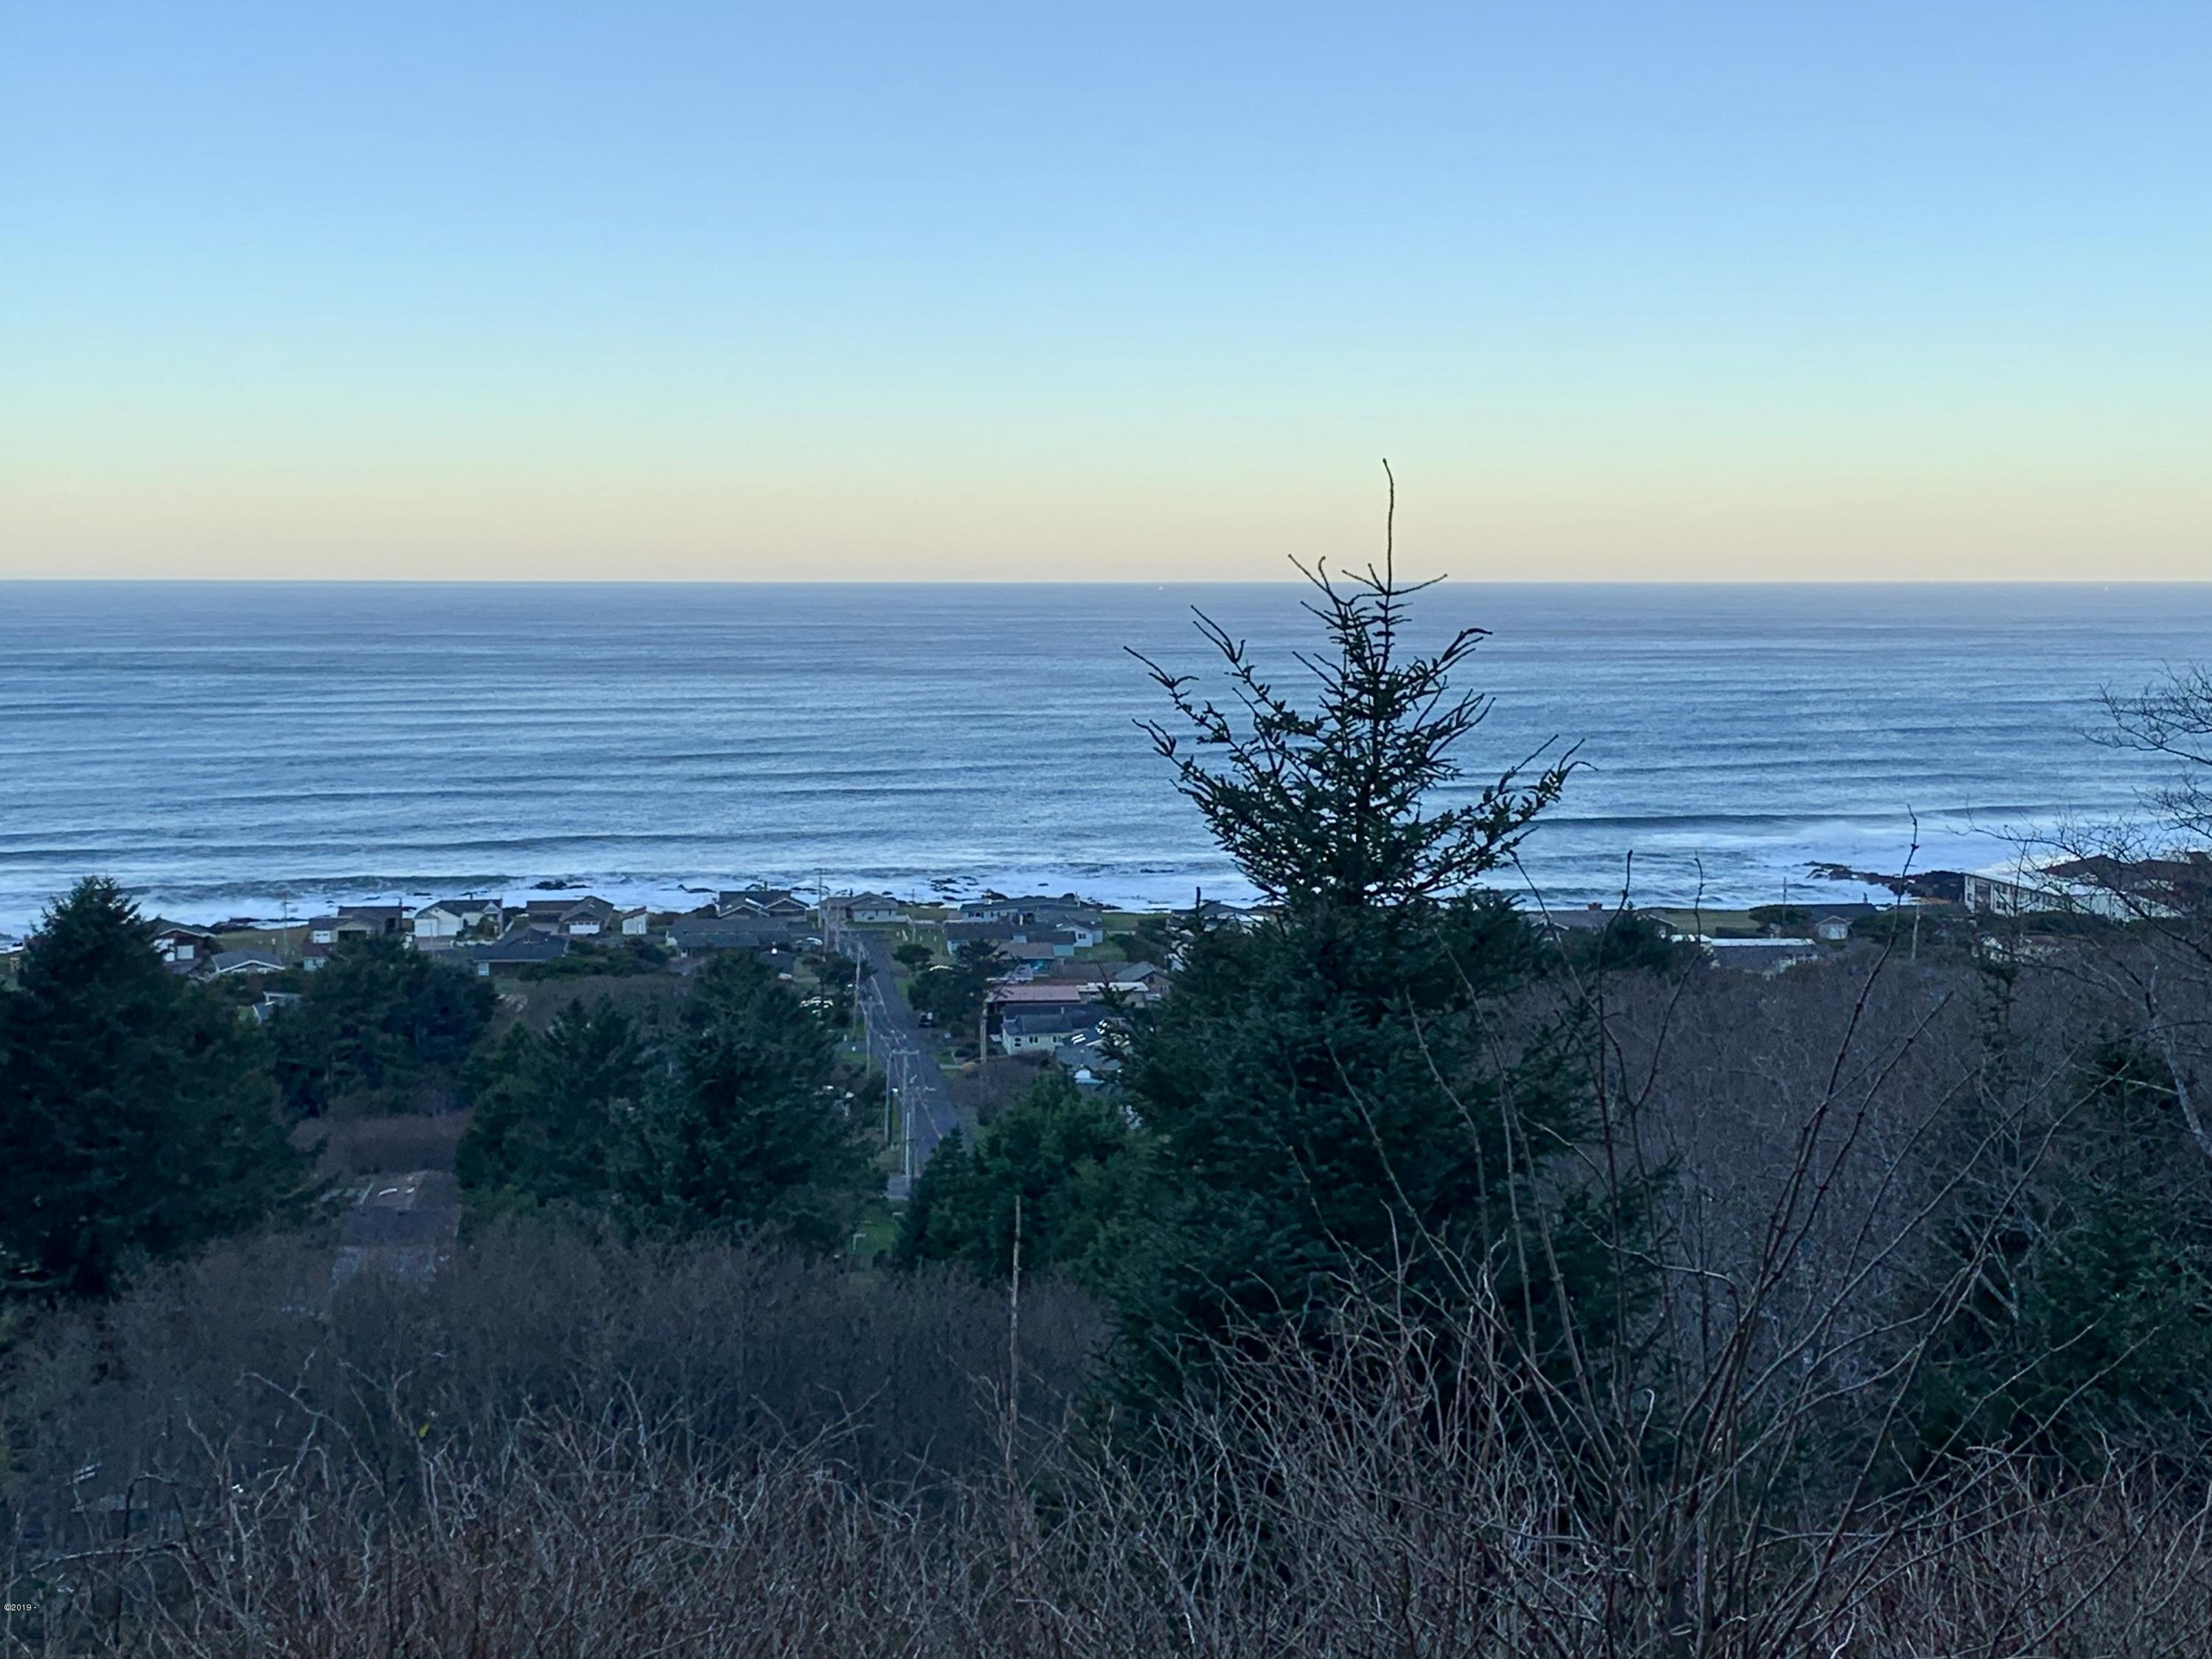 TL 2000 Hanley Dr, Yachats, OR 97498 - Top of Lot Looking West